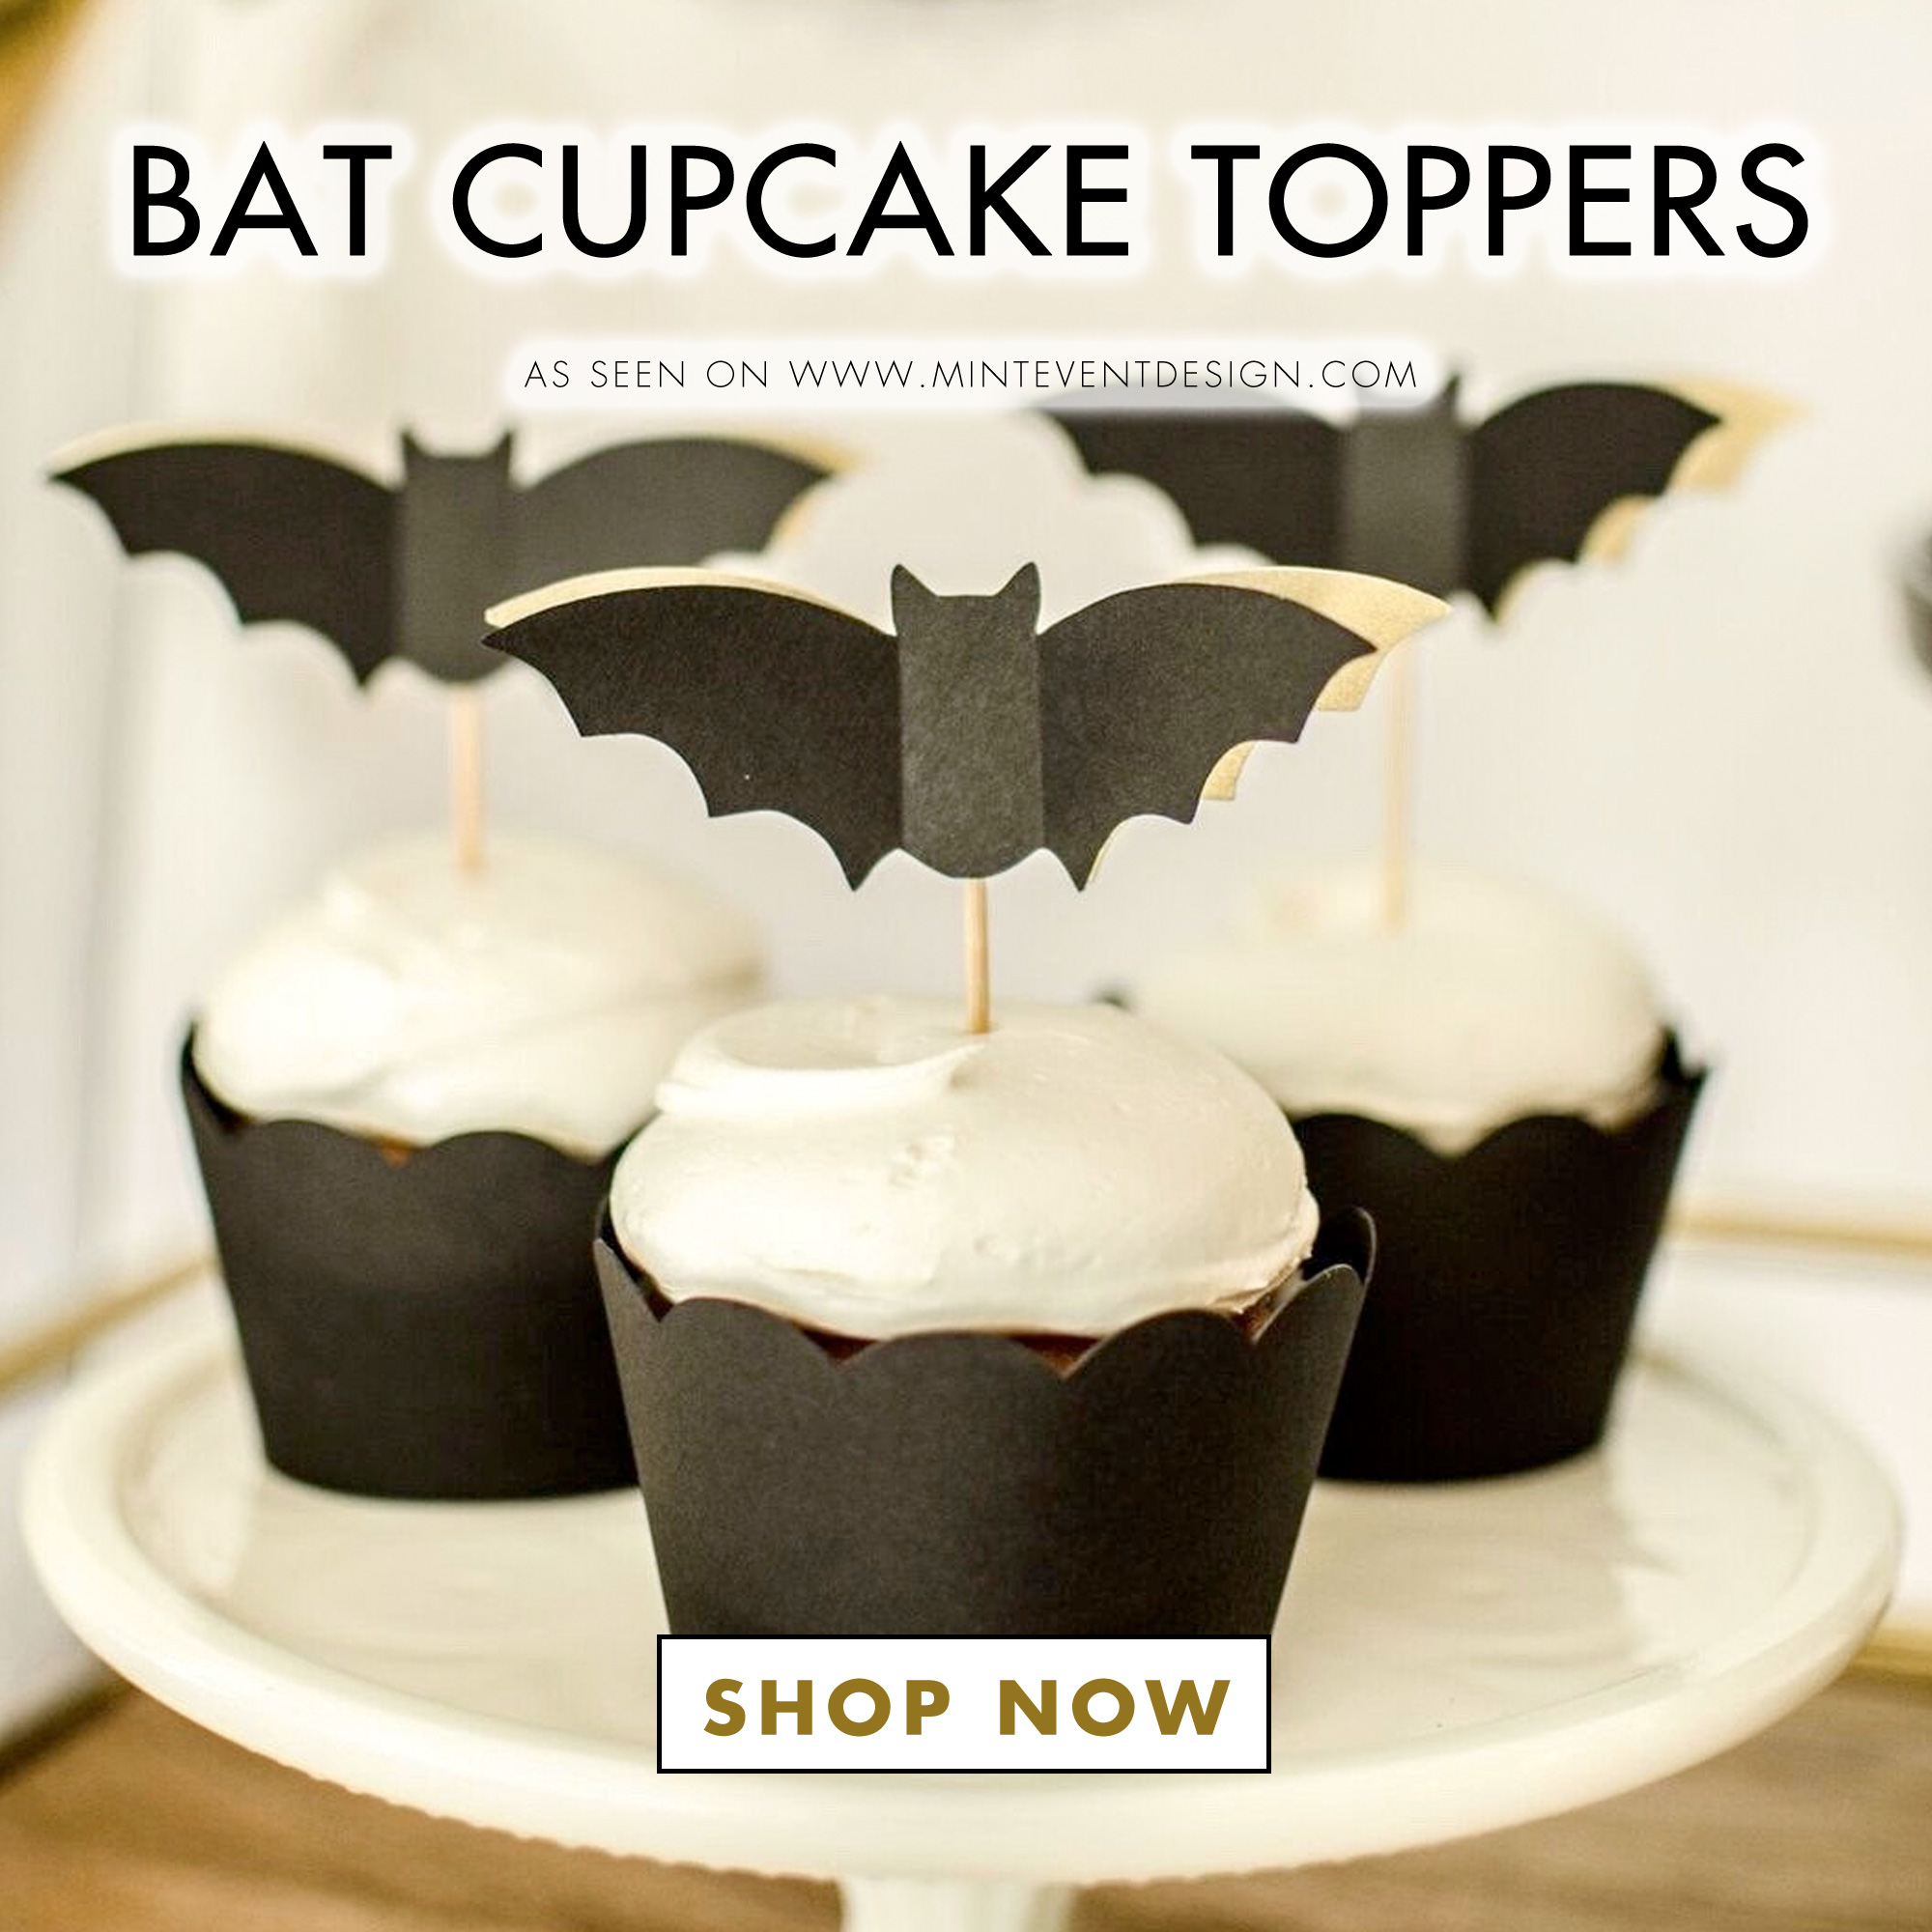 Shop Bat Cupcake Toppers for your Halloween Parties. They're perfect for your Halloween Bar Cart Styling. See all the Halloween Set Up Details on Mint Event Design. www.minteventdesign.com #halloweendecor #halloweenparty #halloweenpartyideas #barcartdecor #cupcaketoppers #bats